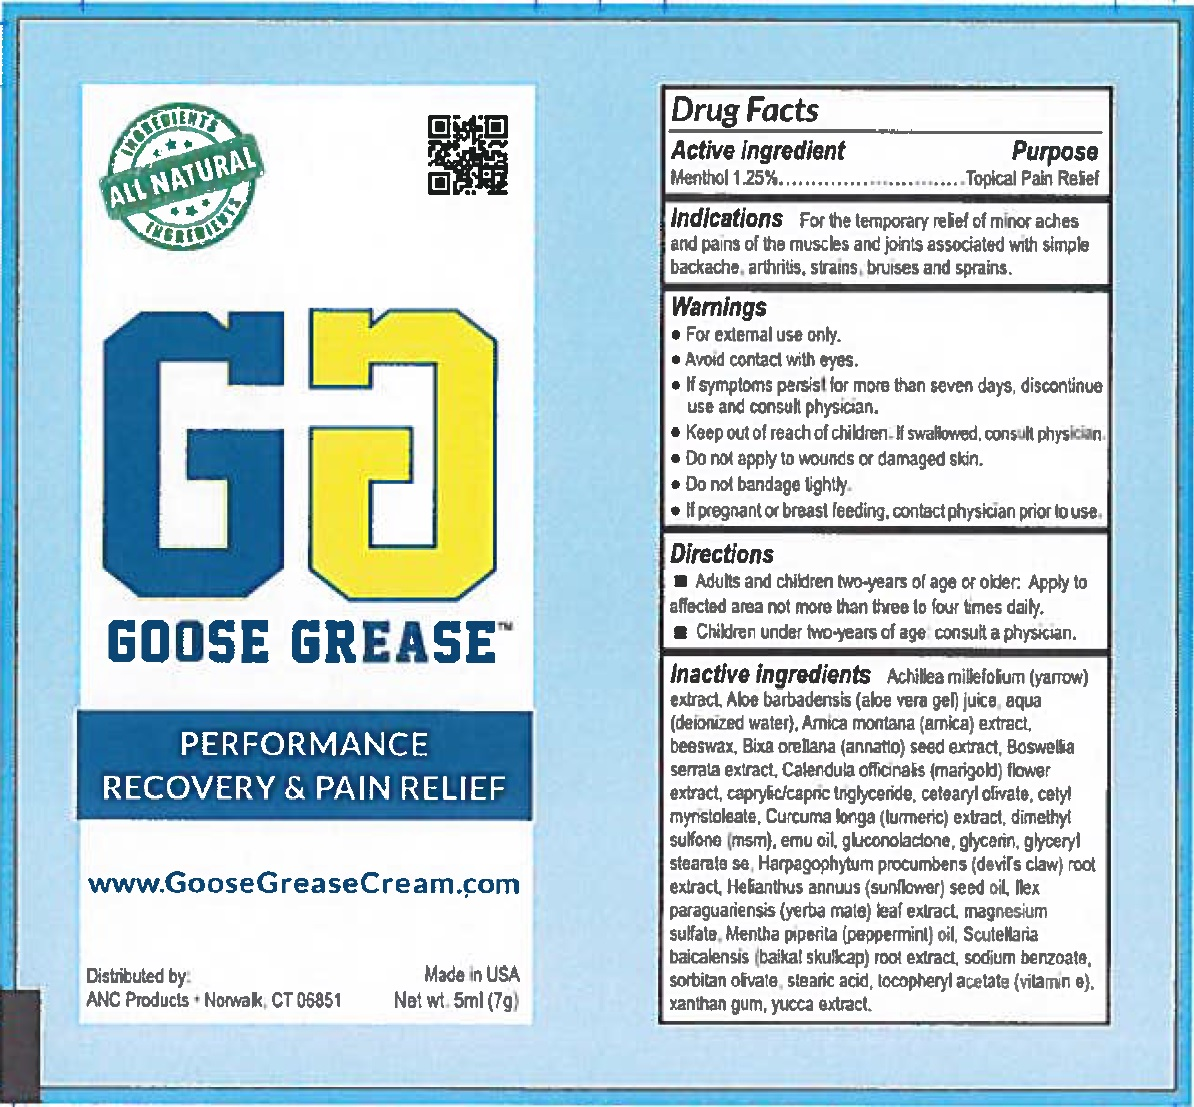 MENTHOL (Goose Grease Recovery and Pain Relief)